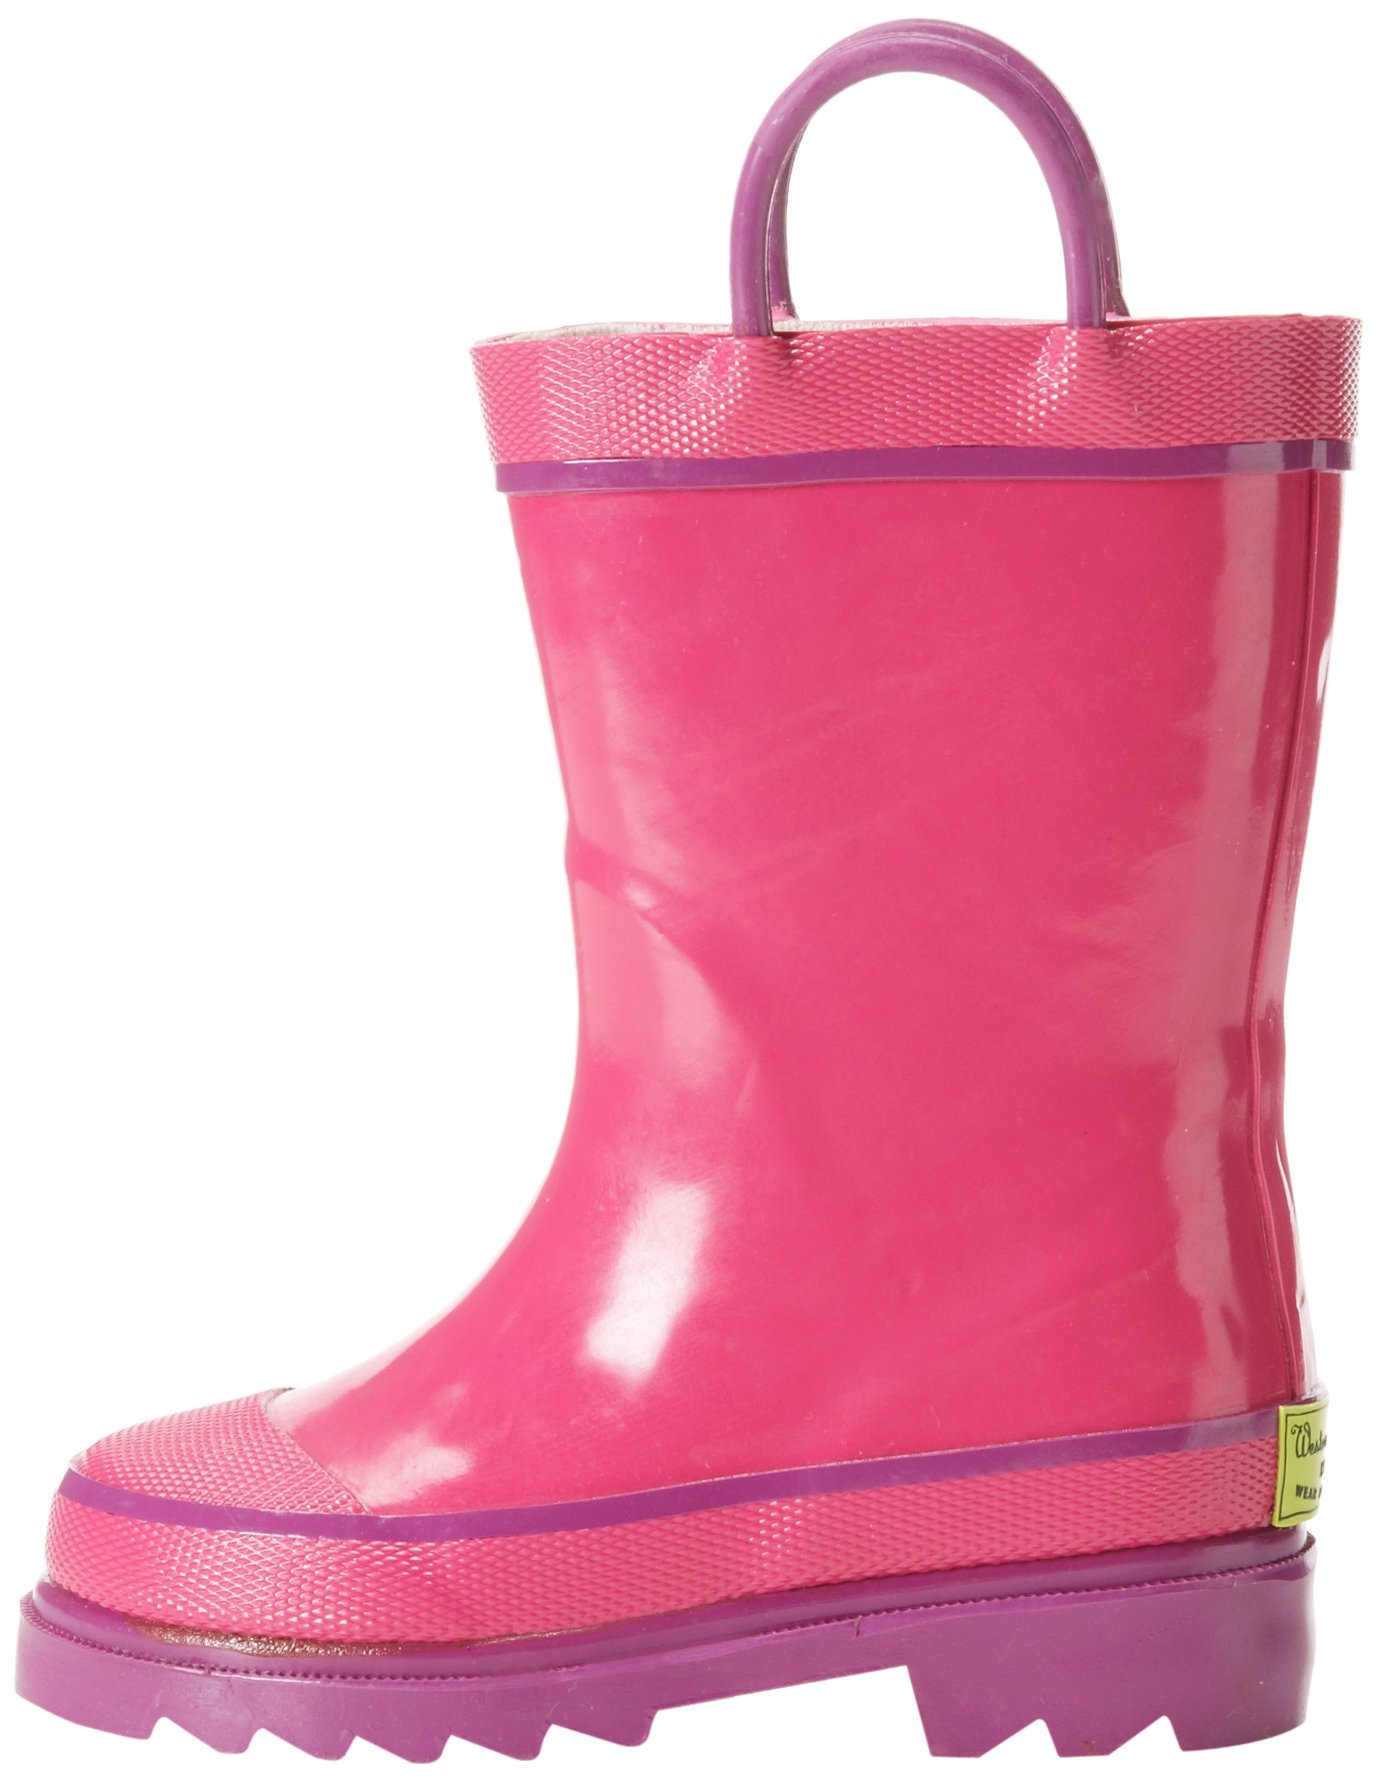 Western Chief Kids Waterproof Rubber Classic Rain Boot with Pull Handles, Pink, 7 M US Toddler by Western Chief (Image #5)